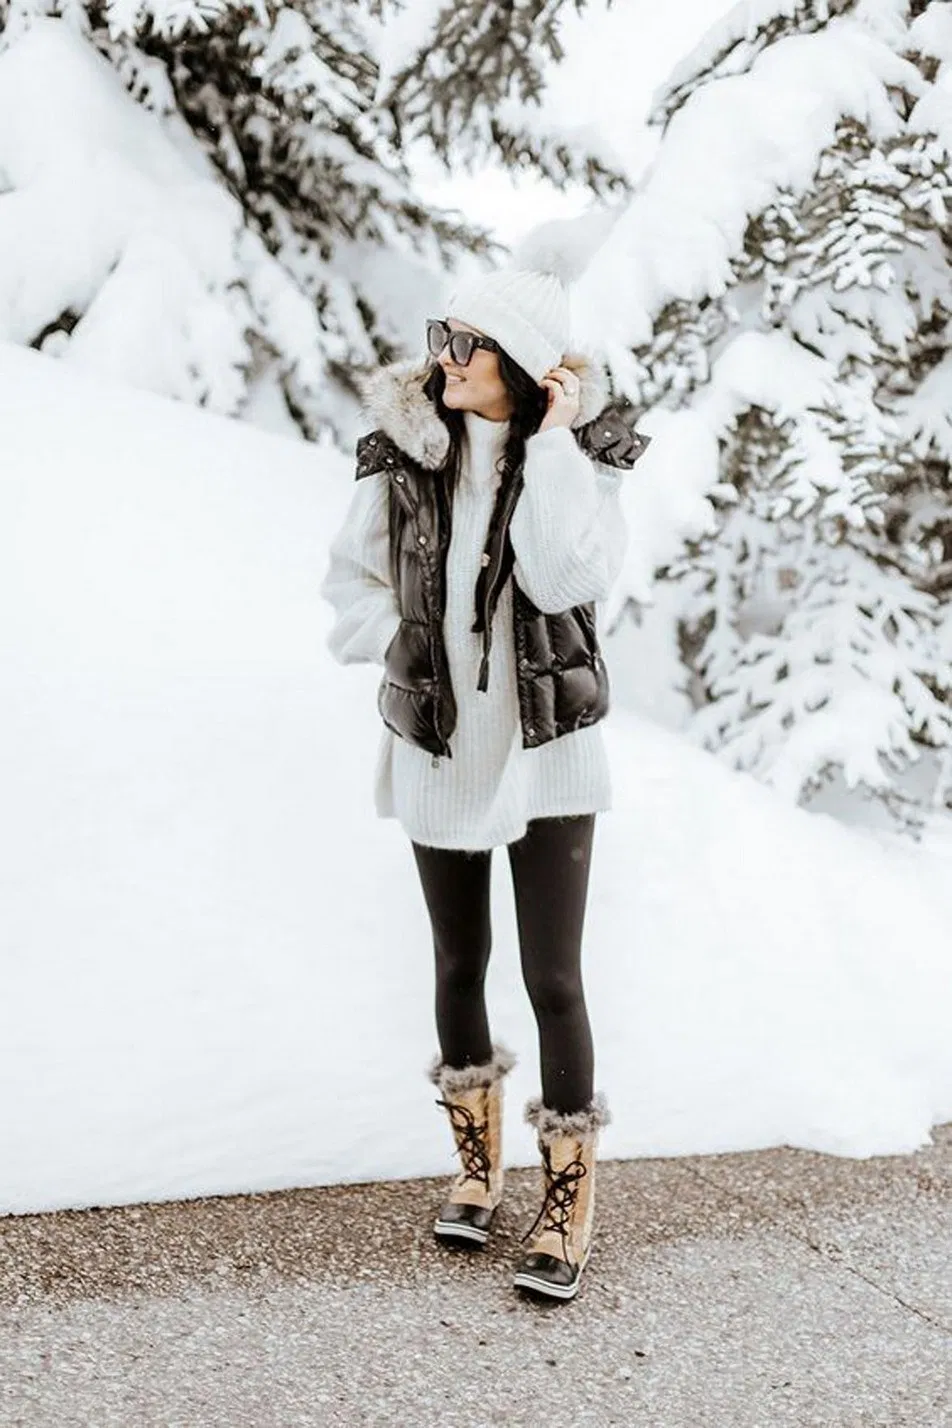 22 Lovely Women Winter Outfits Ideas Enjoy The Snow